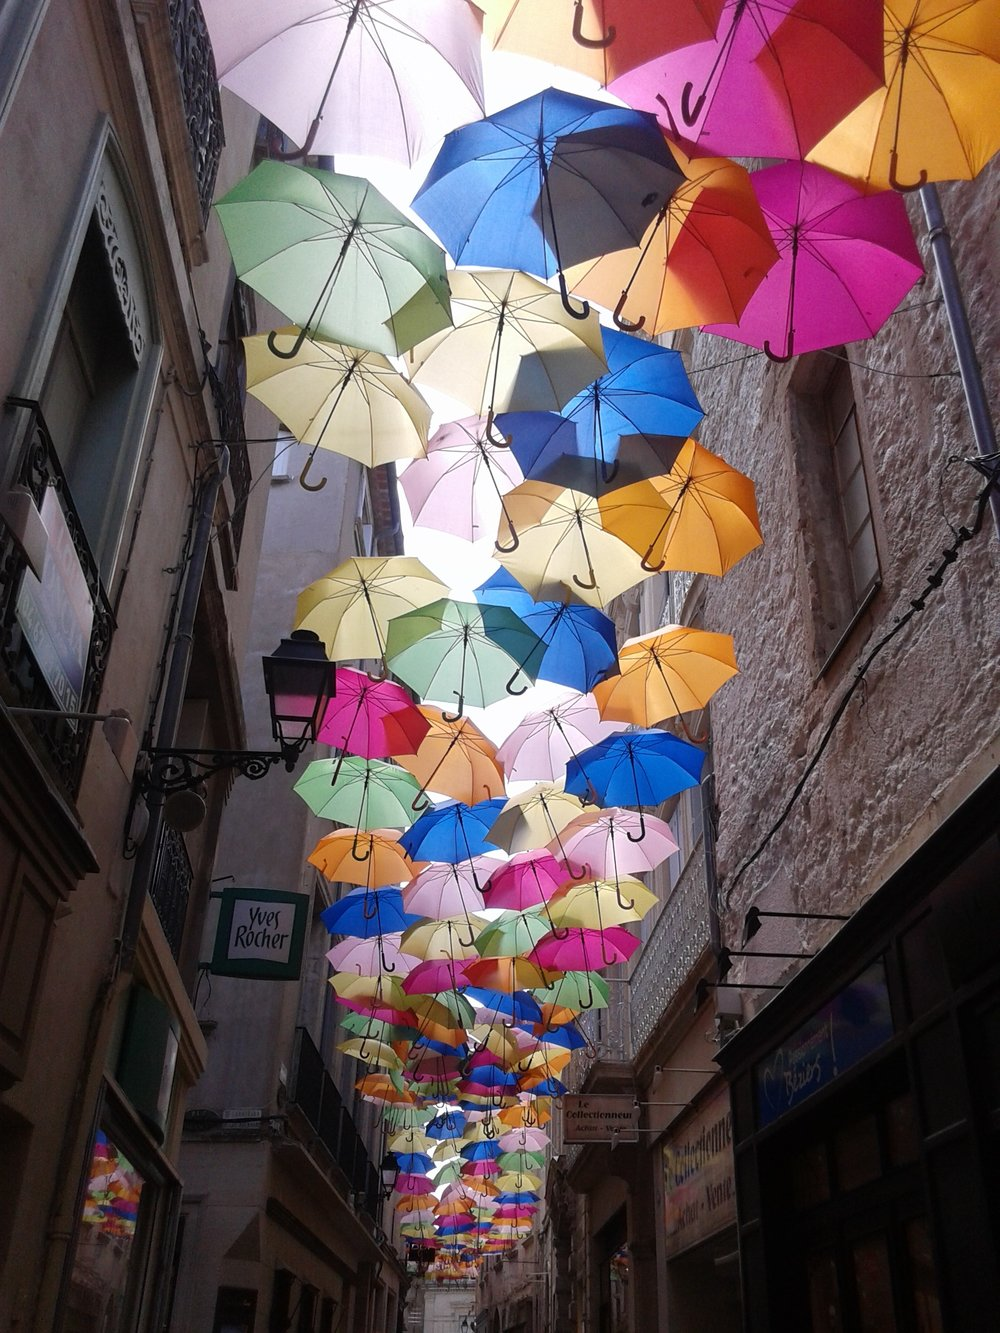 umbrella-street-color-1678327.jpg